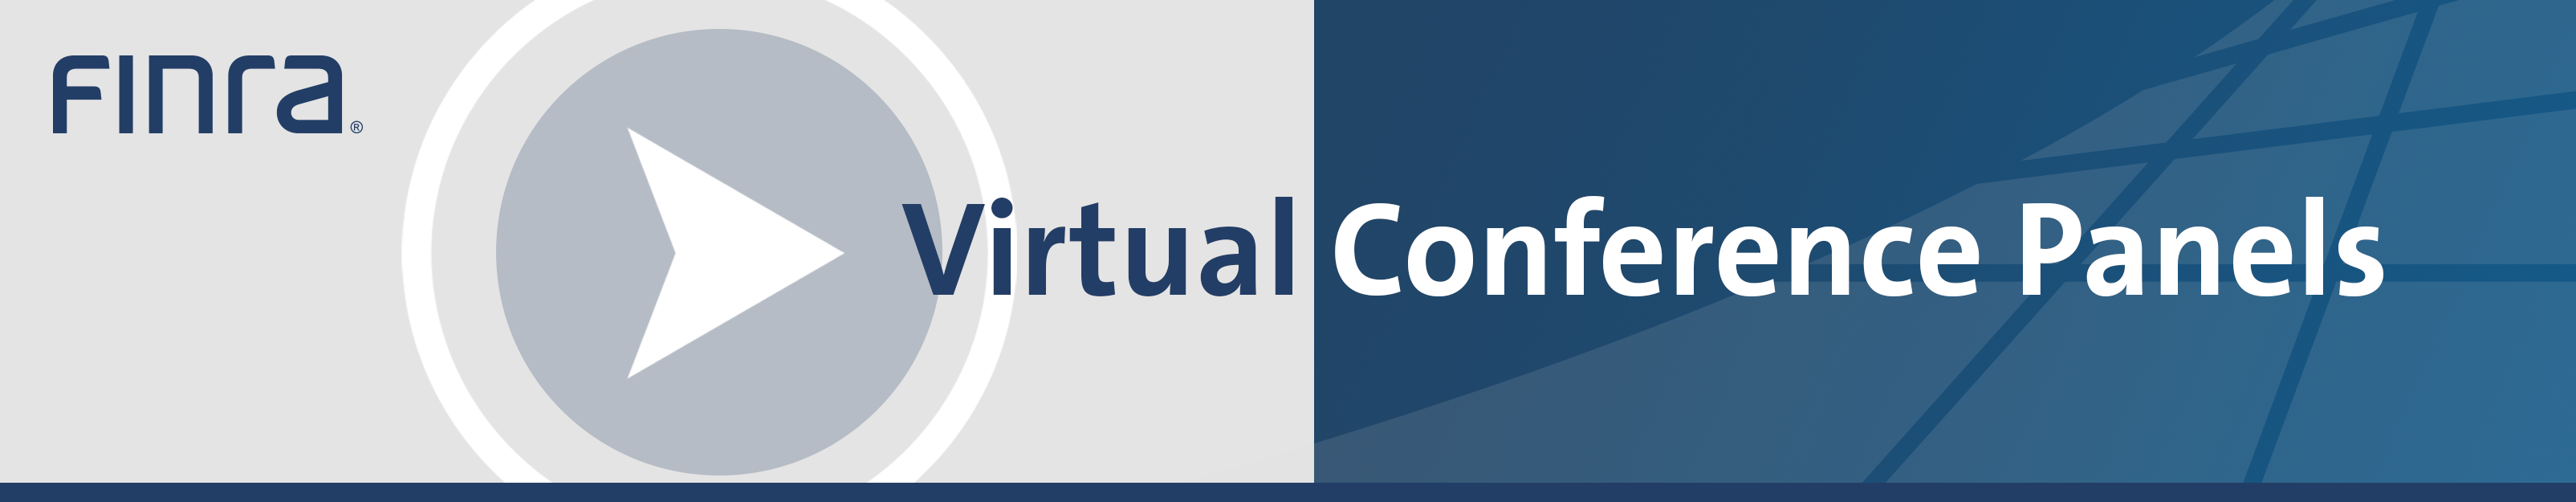 FINRA Virtual Conference Panels